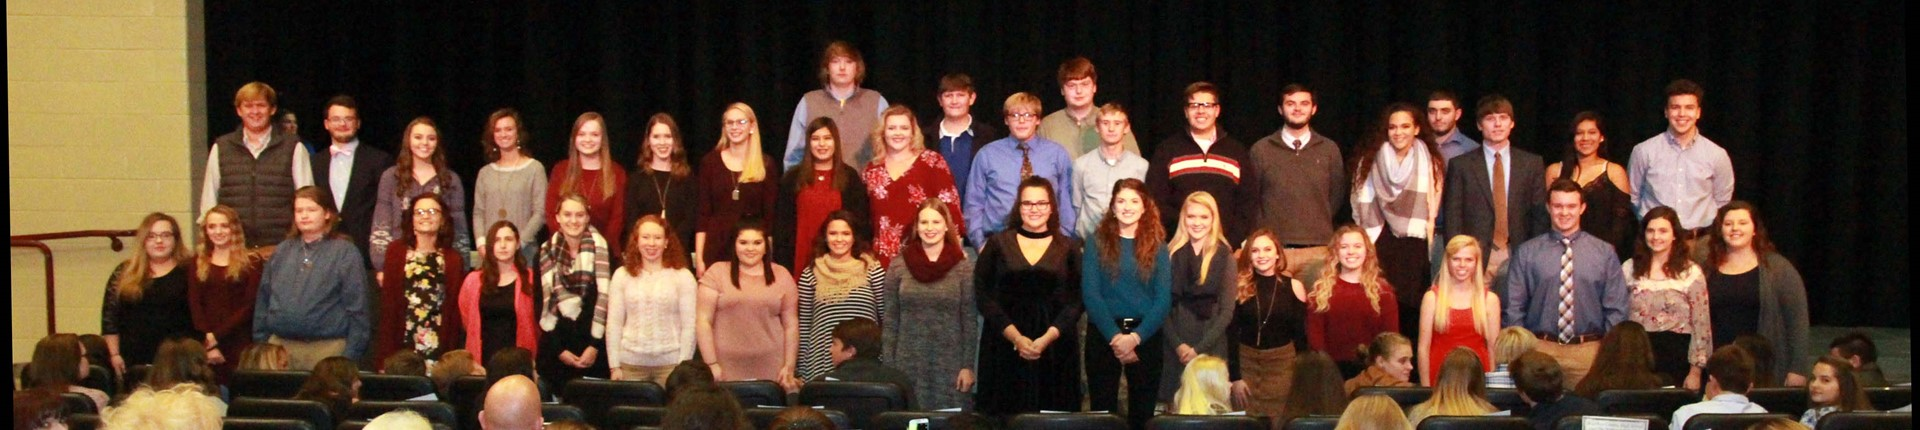 Bourbon County High School students group photo after being inducted to the National Honor Society Initiates